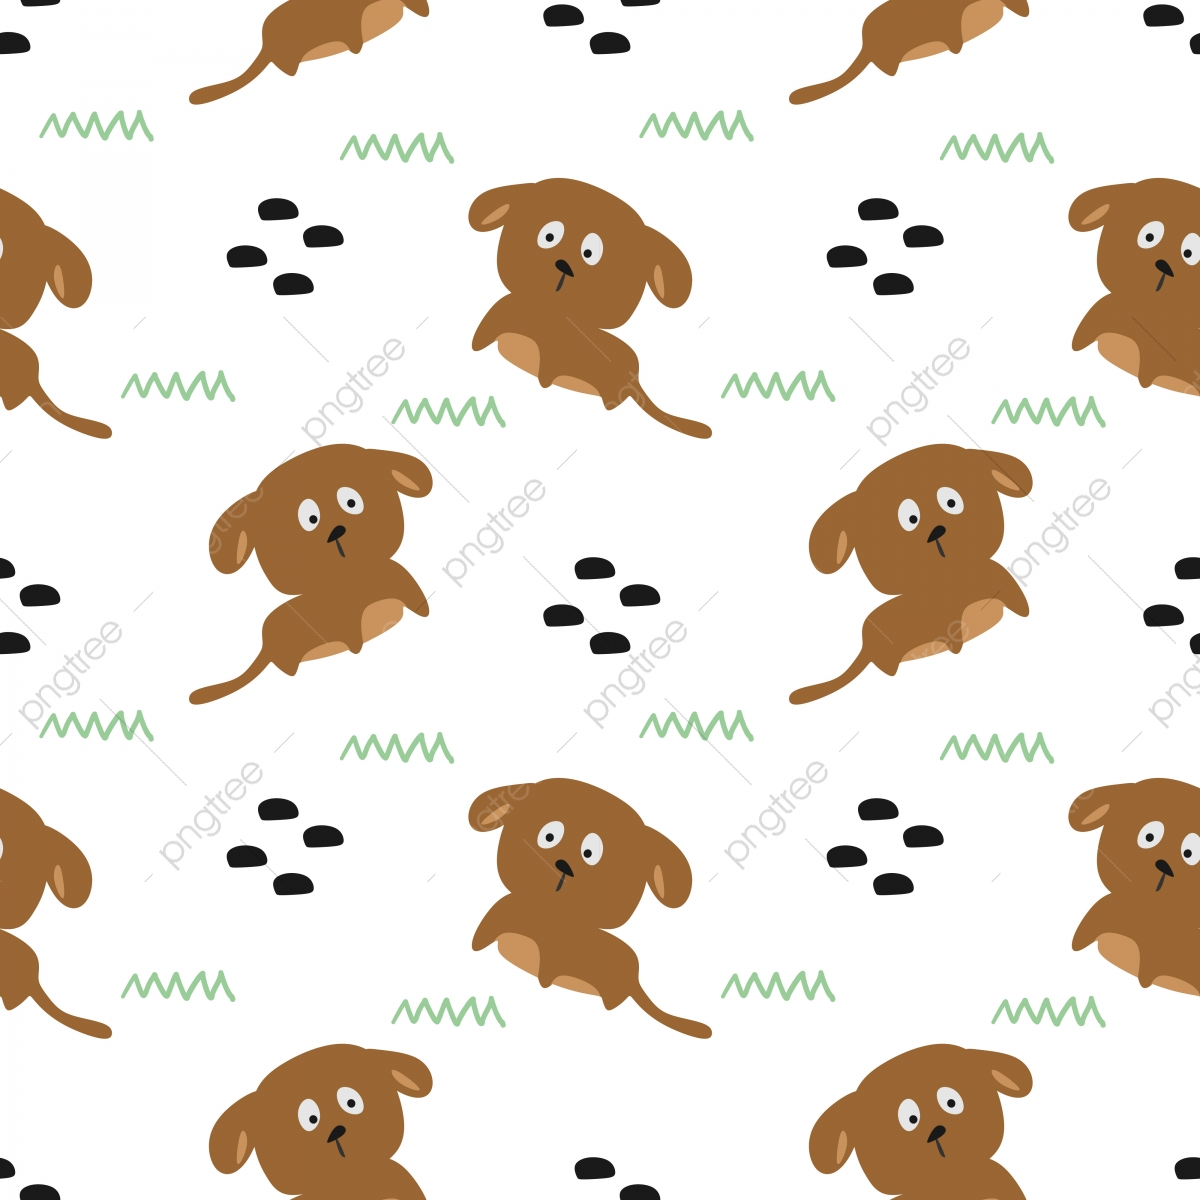 Cute Puppy Seamless Pattern Vector For Baby Textile Wallpaper Background Pattern Baby Png And Vector With Transparent Background For Free Download